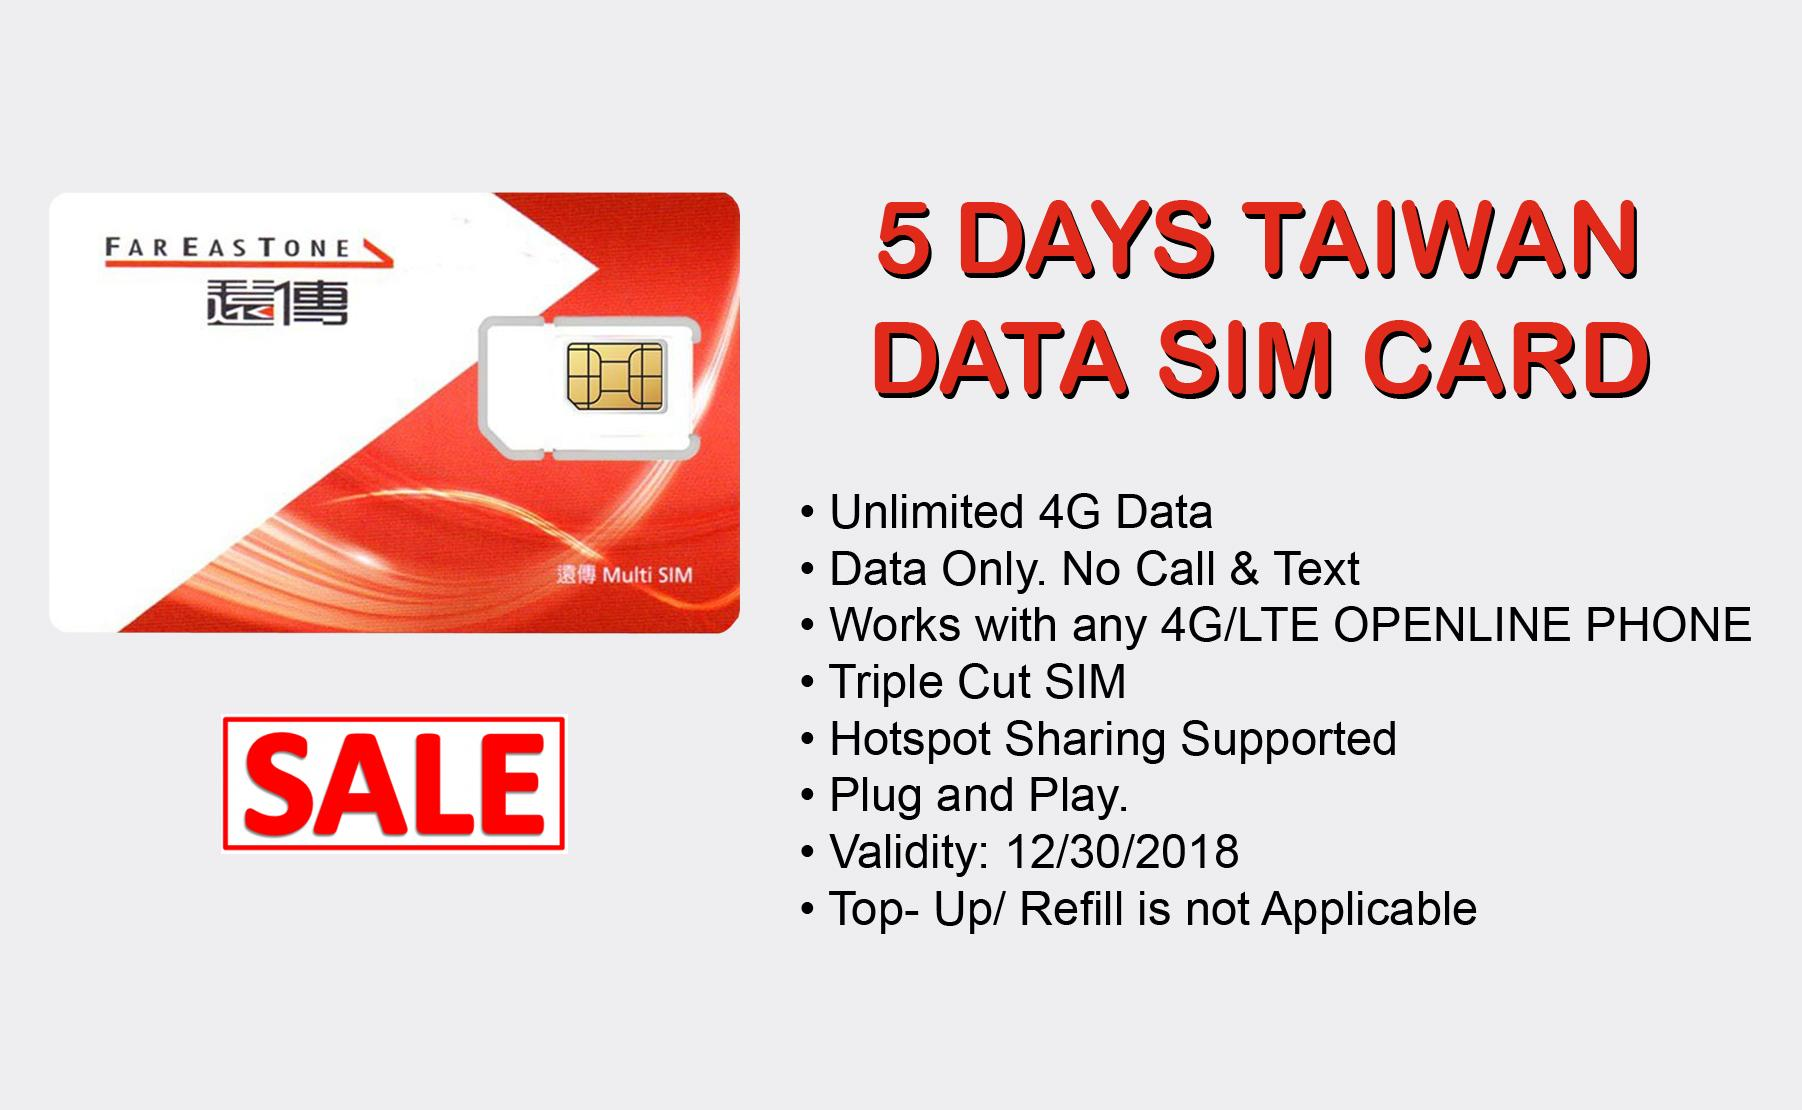 5 Days Taiwan Unlimited Data Sim Card